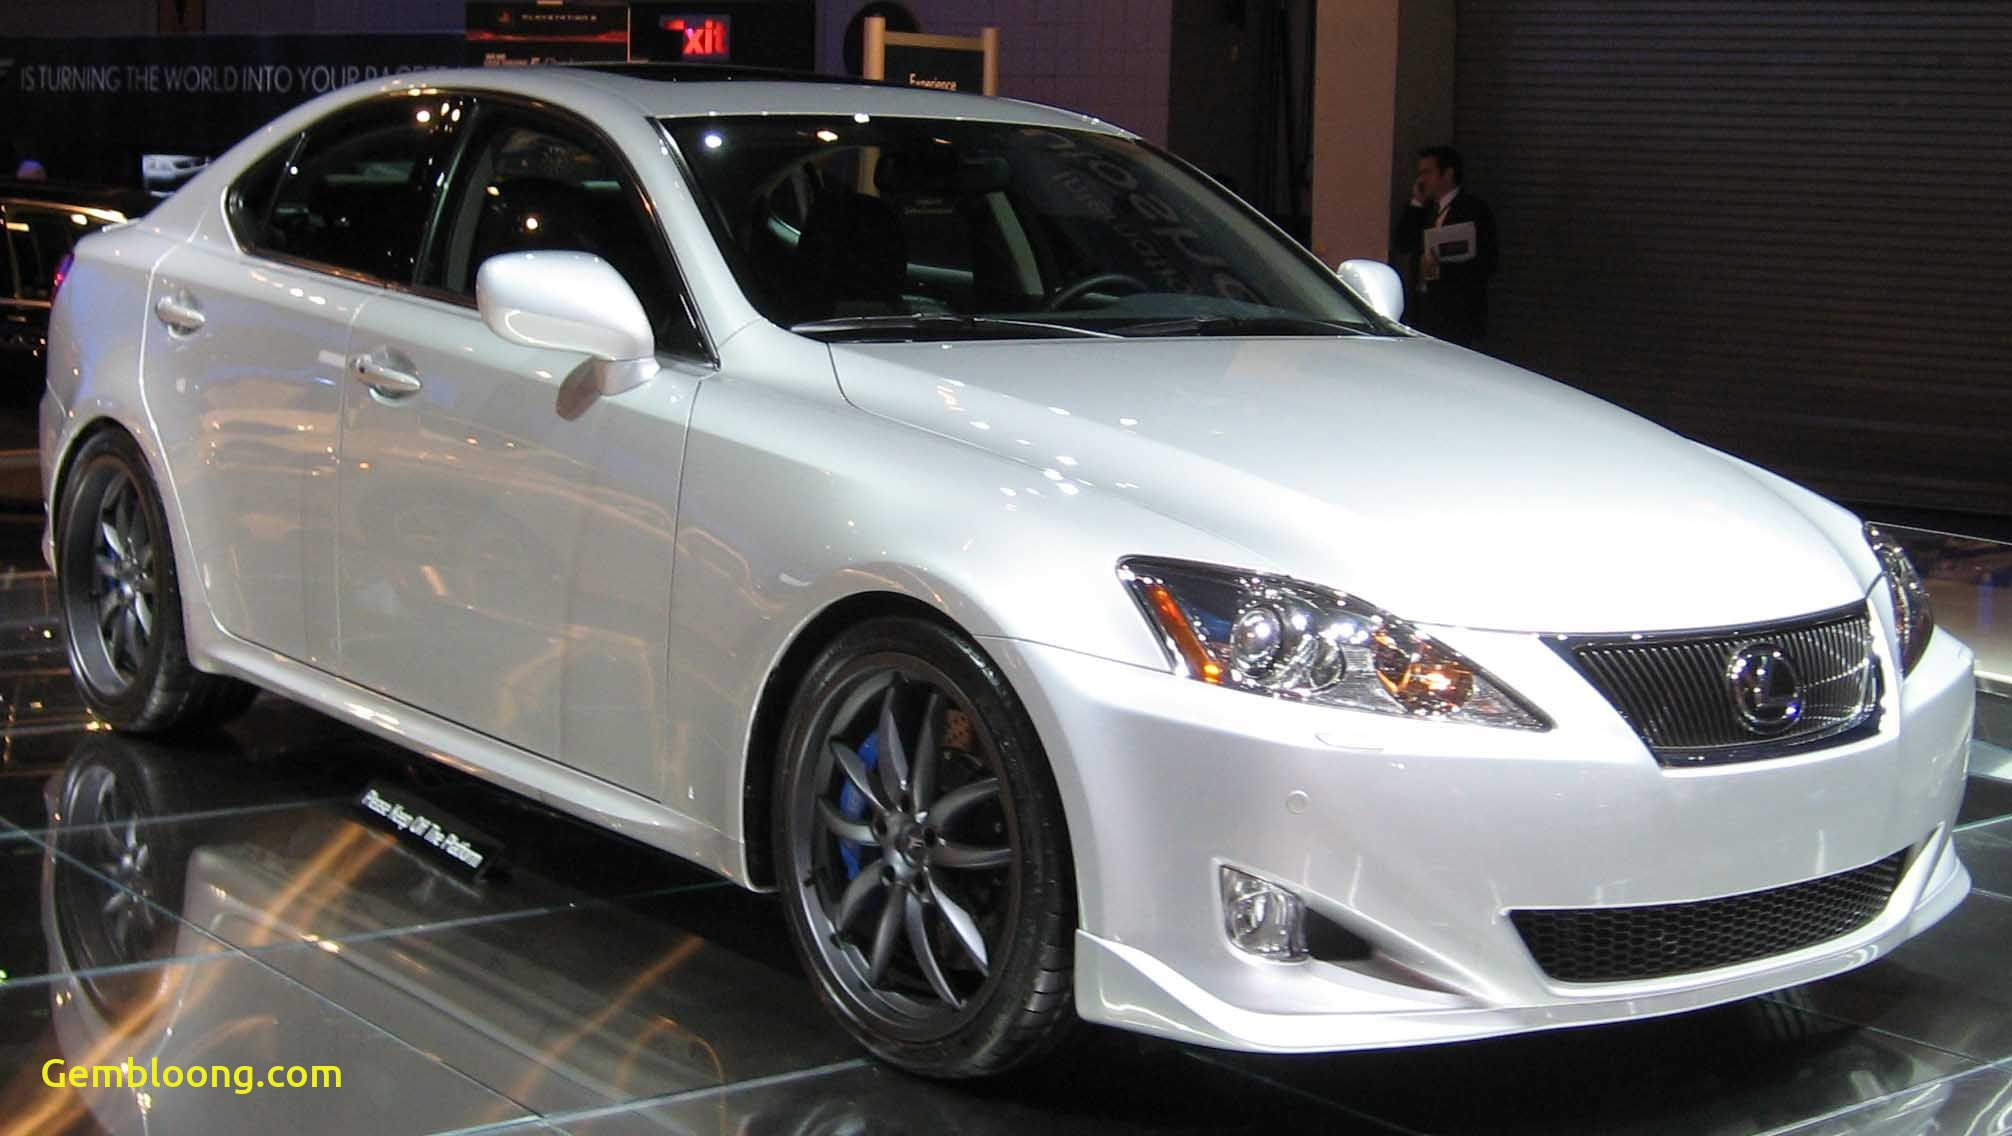 Lexus Gs 350 Luxury Dream Car Lexus isf In Pearl White with Tinted Windows and